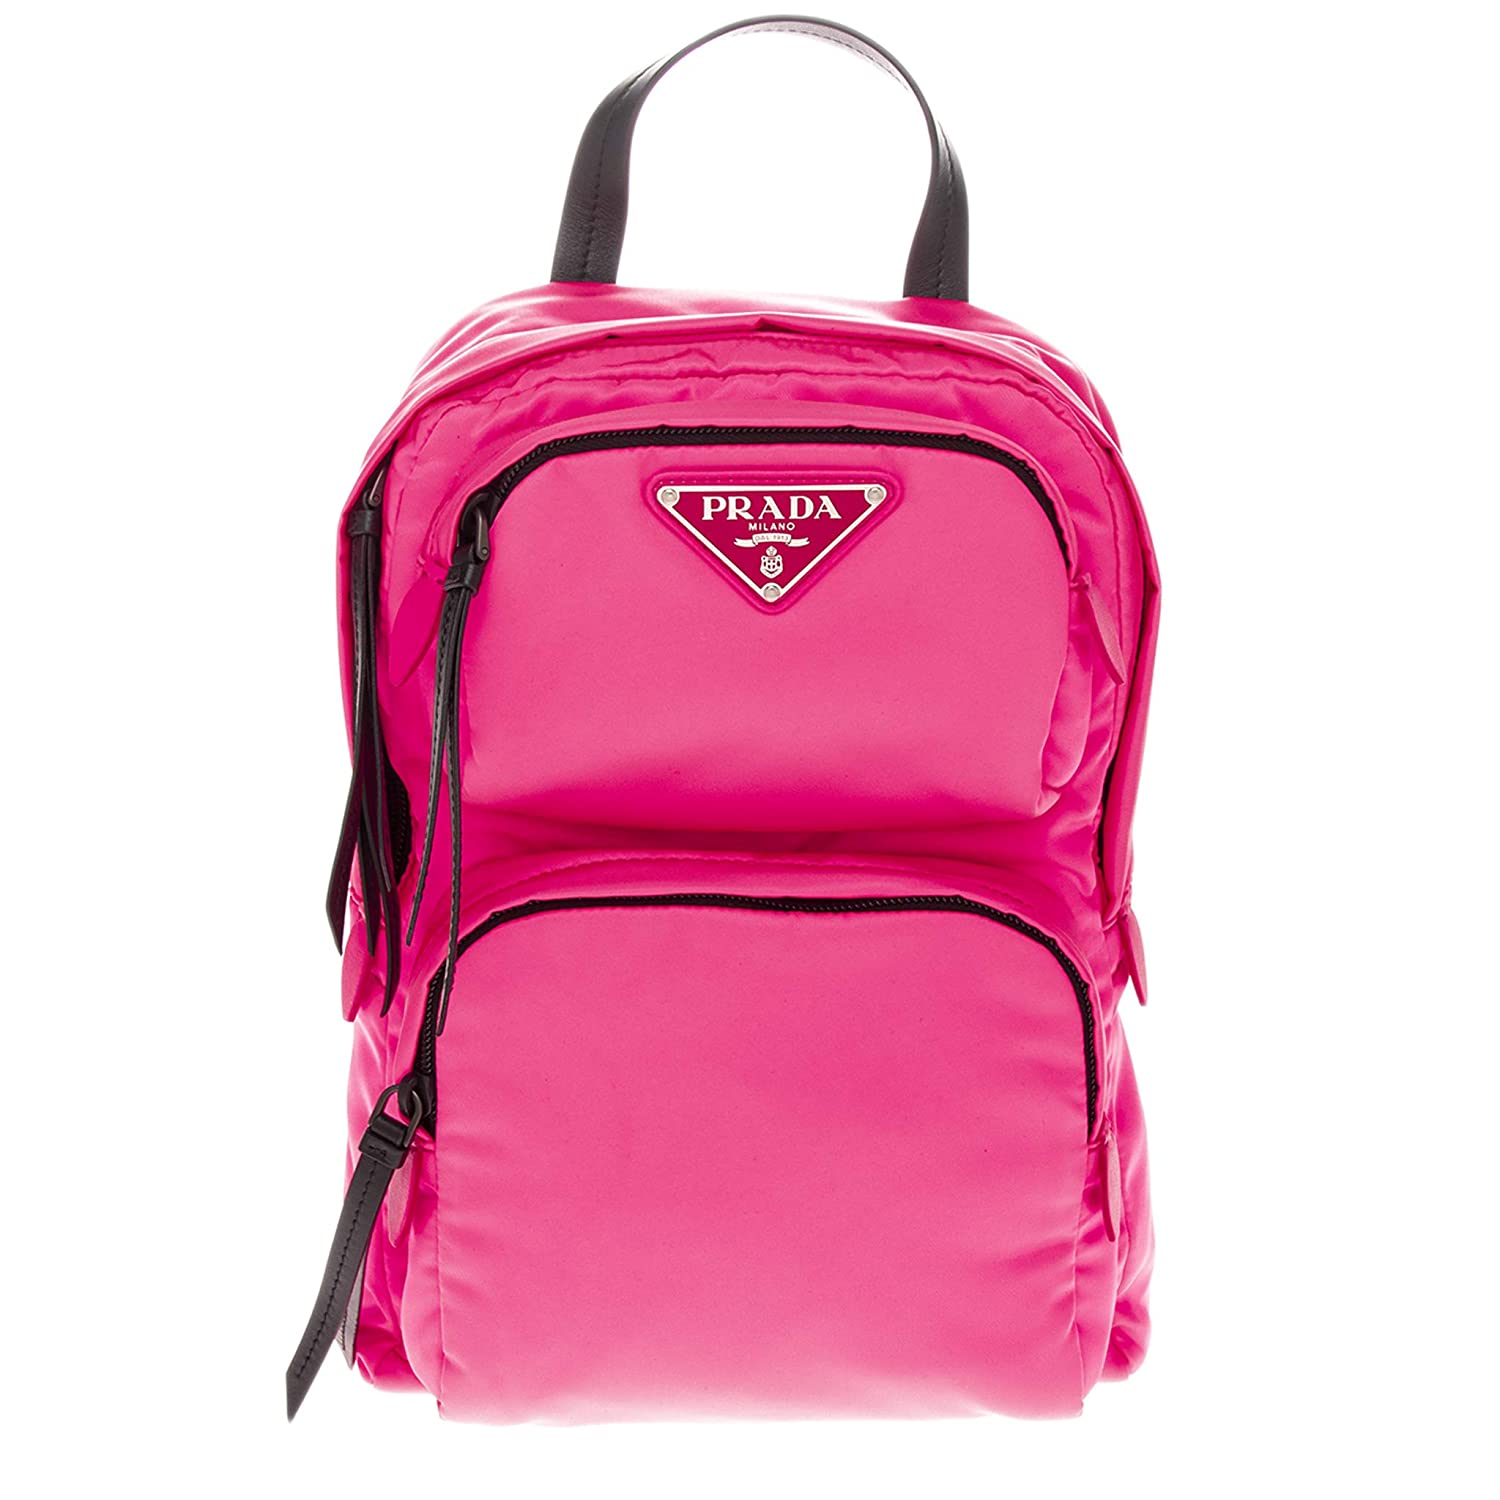 3bbbd7262324 Amazon.com | Prada Nylon/Leather One Shoulder Backpack Neon Pink | Casual  Daypacks